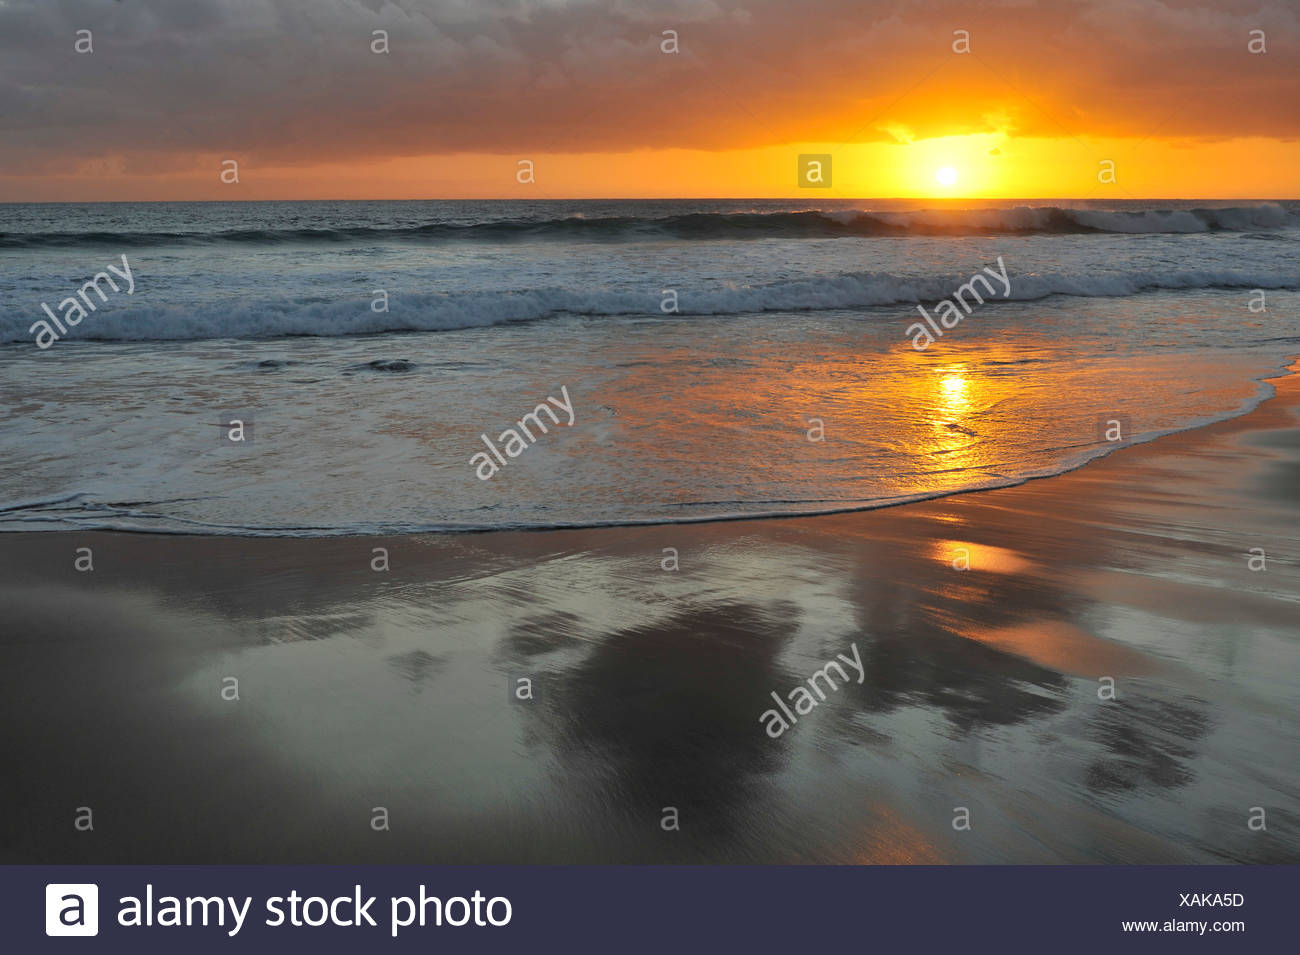 Sunset at the Atlantic, Fuerteventura, Canary Islands, Spain, Europe Stock Photo